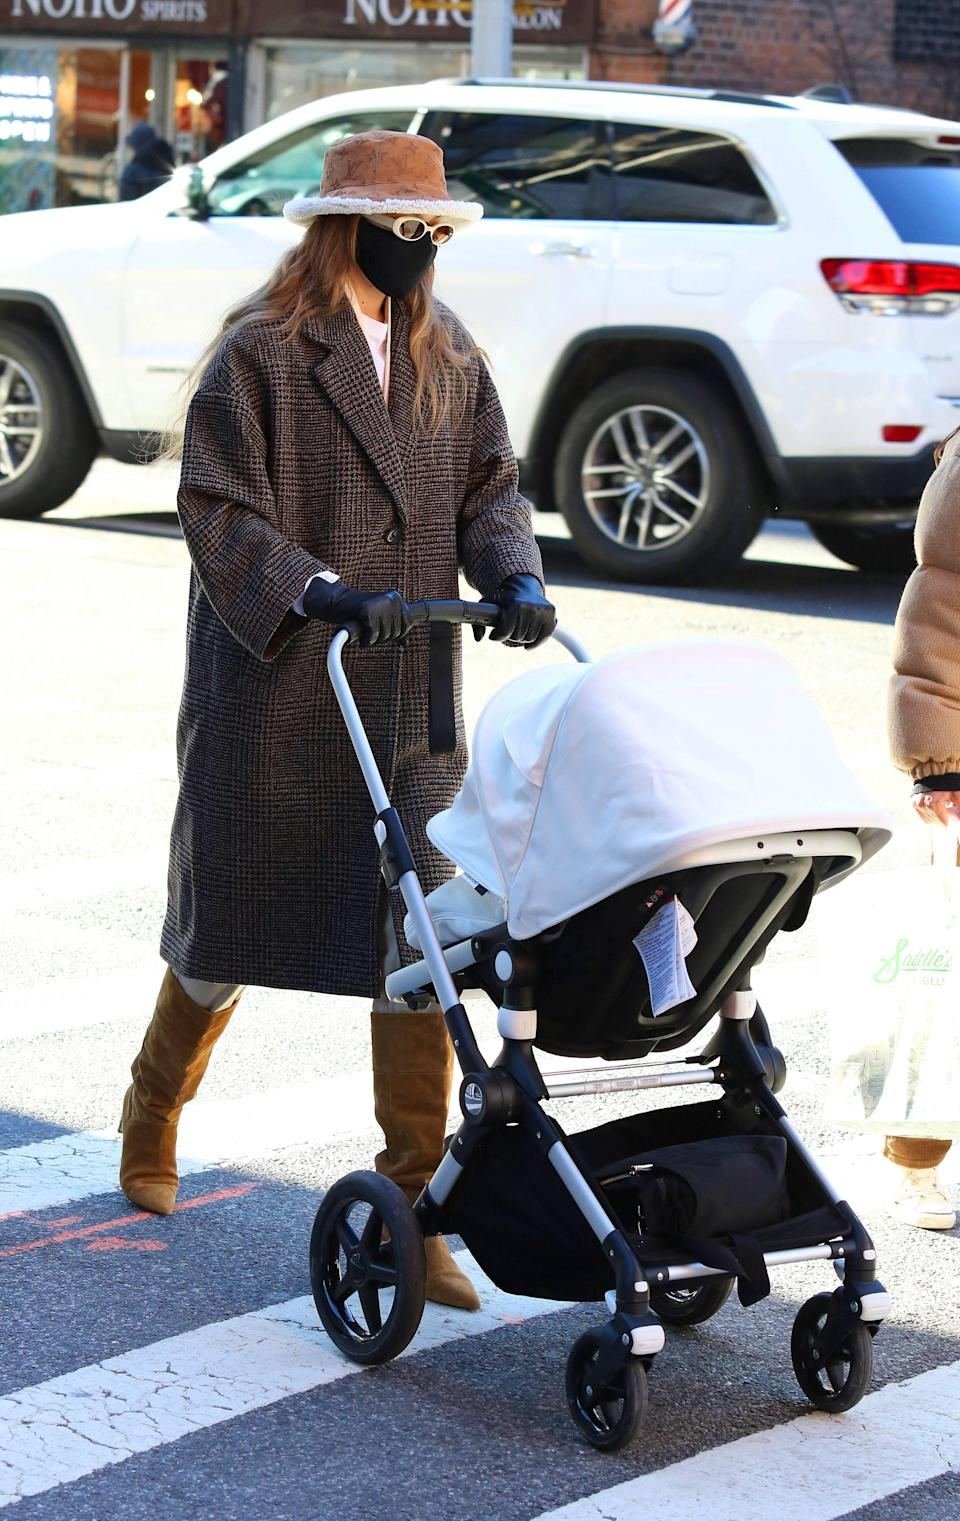 """This day, Gigi opted for the <a href=""""https://www.teenvogue.com/story/gigi-hadid-stroller-style?mbid=synd_yahoo_rss"""" rel=""""nofollow noopener"""" target=""""_blank"""" data-ylk=""""slk:perfect mix of luxury and affordable fashion"""" class=""""link rapid-noclick-resp"""">perfect mix of luxury and affordable fashion</a> combining a coat from Mango, Dear Frances boots, and a Louis Vuitton bucket hat that she can't seem to get enough of."""